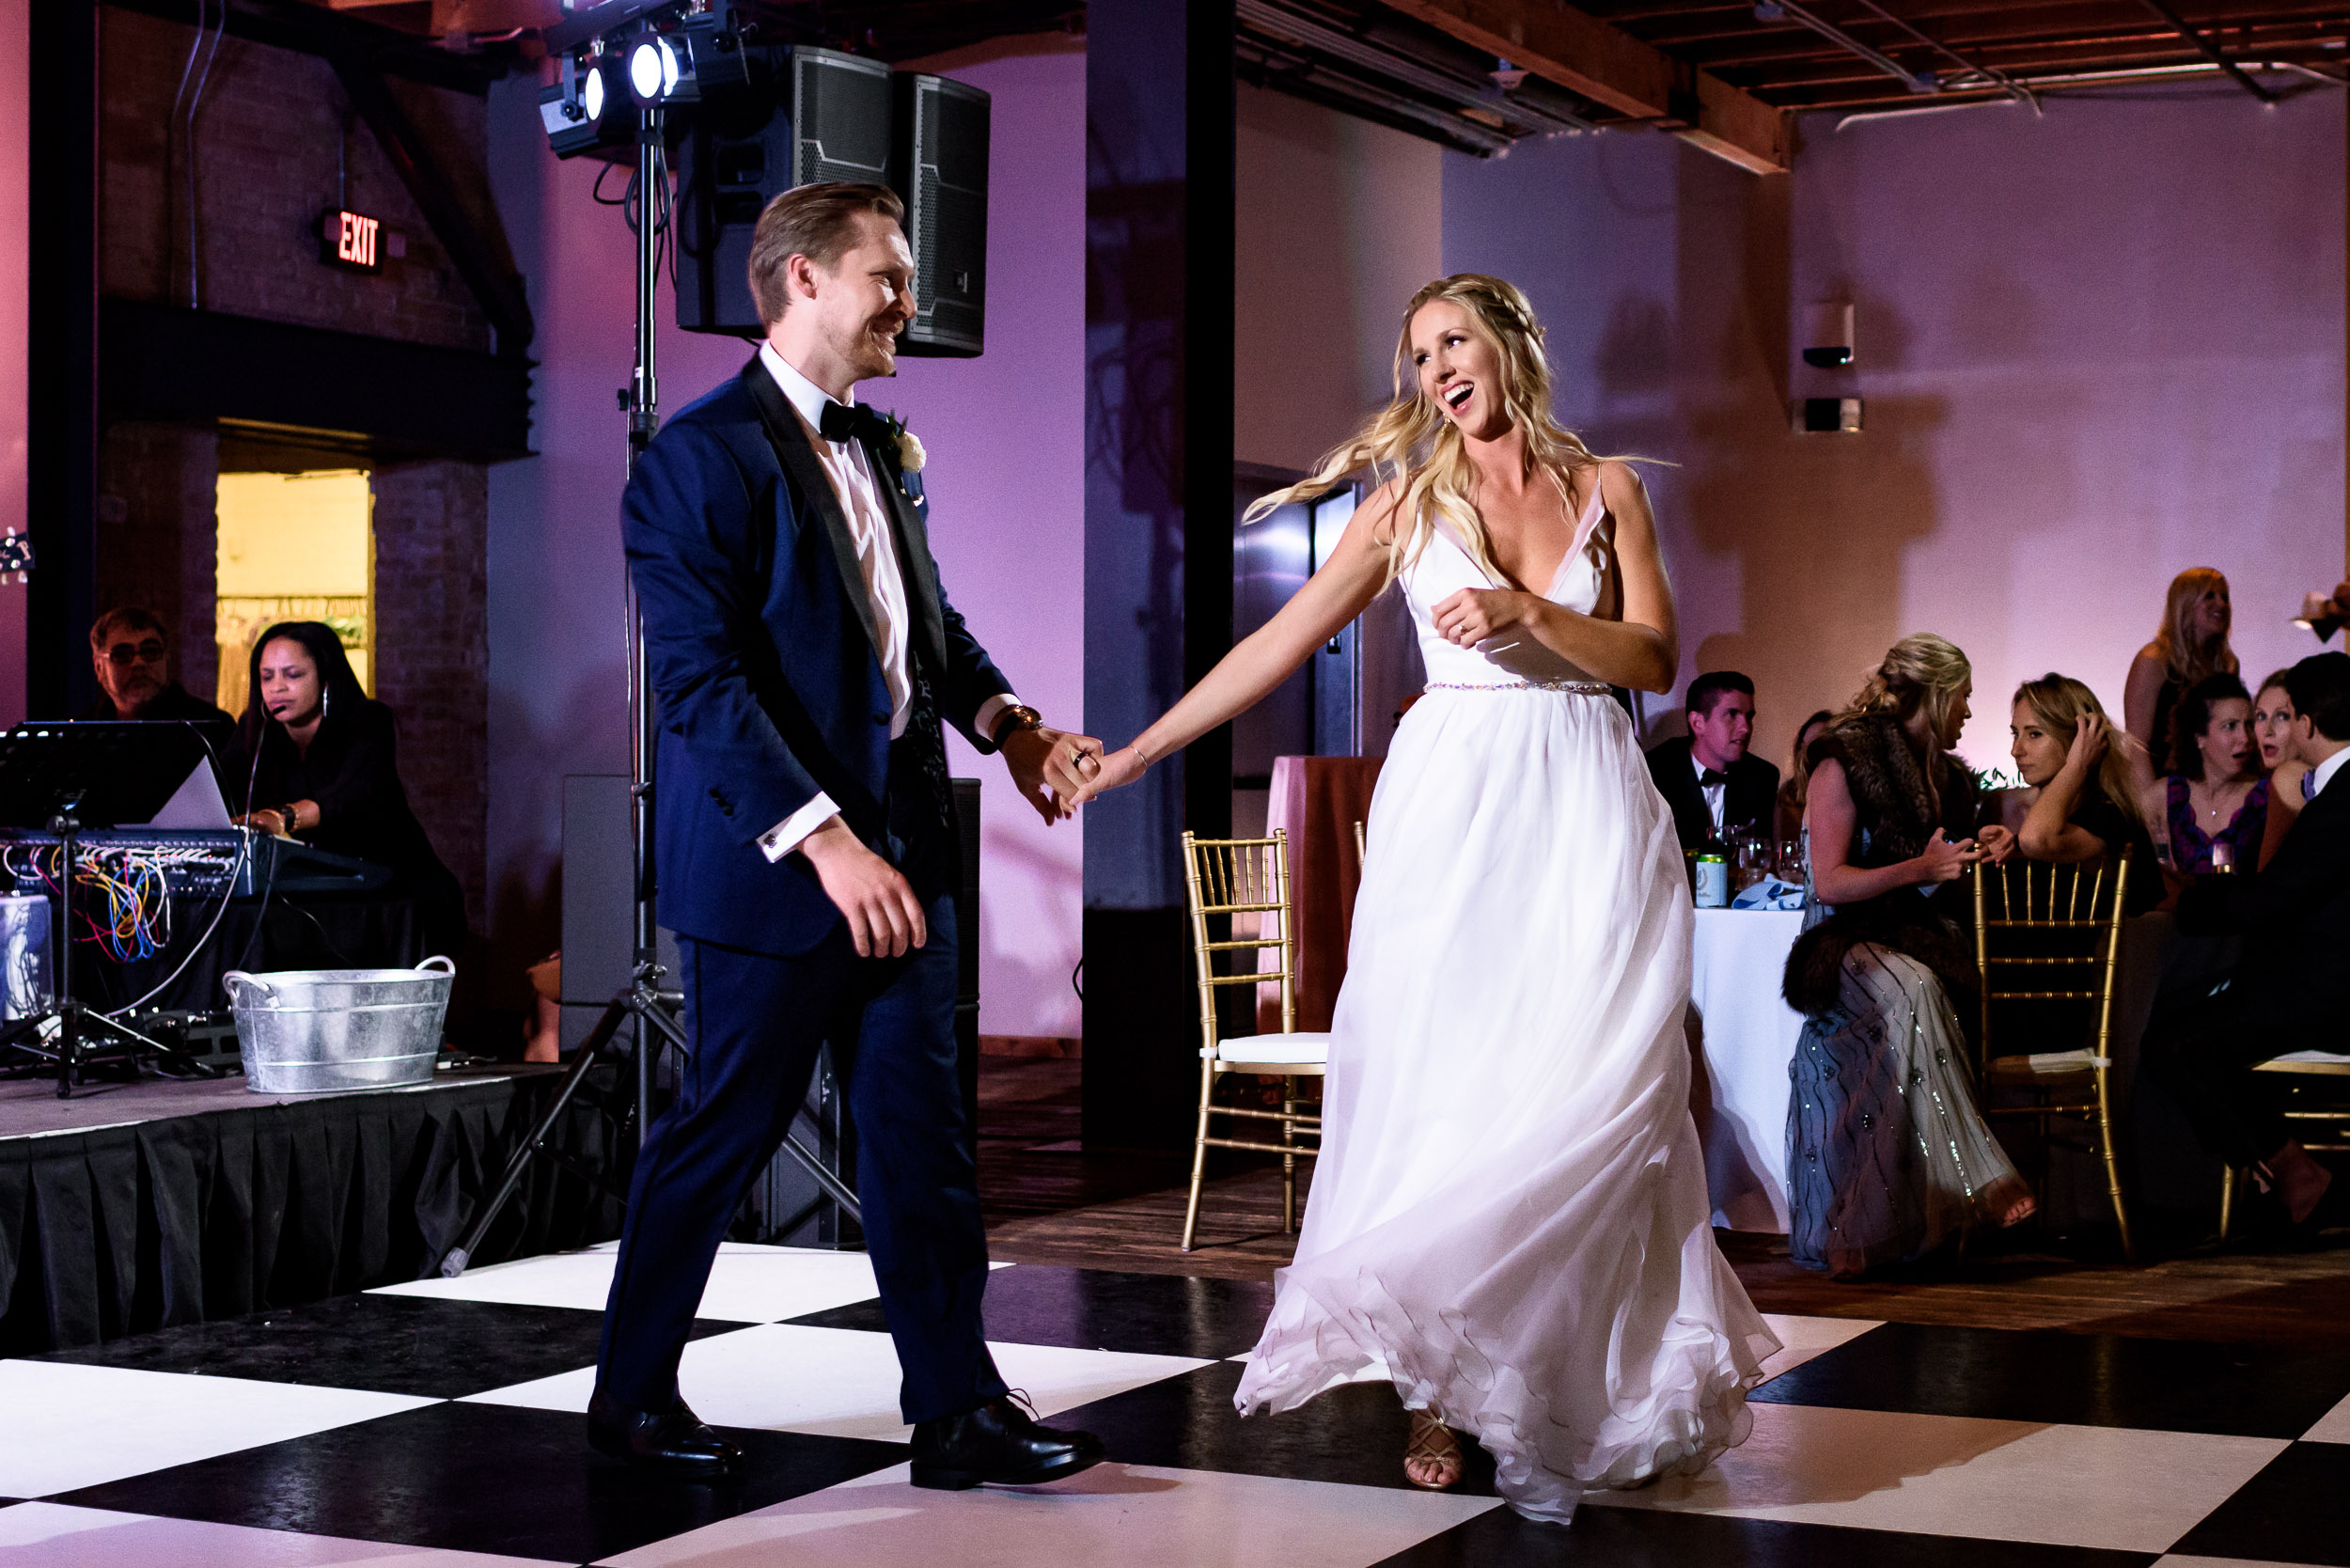 Austin-wedding-photographers-purple-uplighting-brazos-hall-downtown-twirl-first-dance